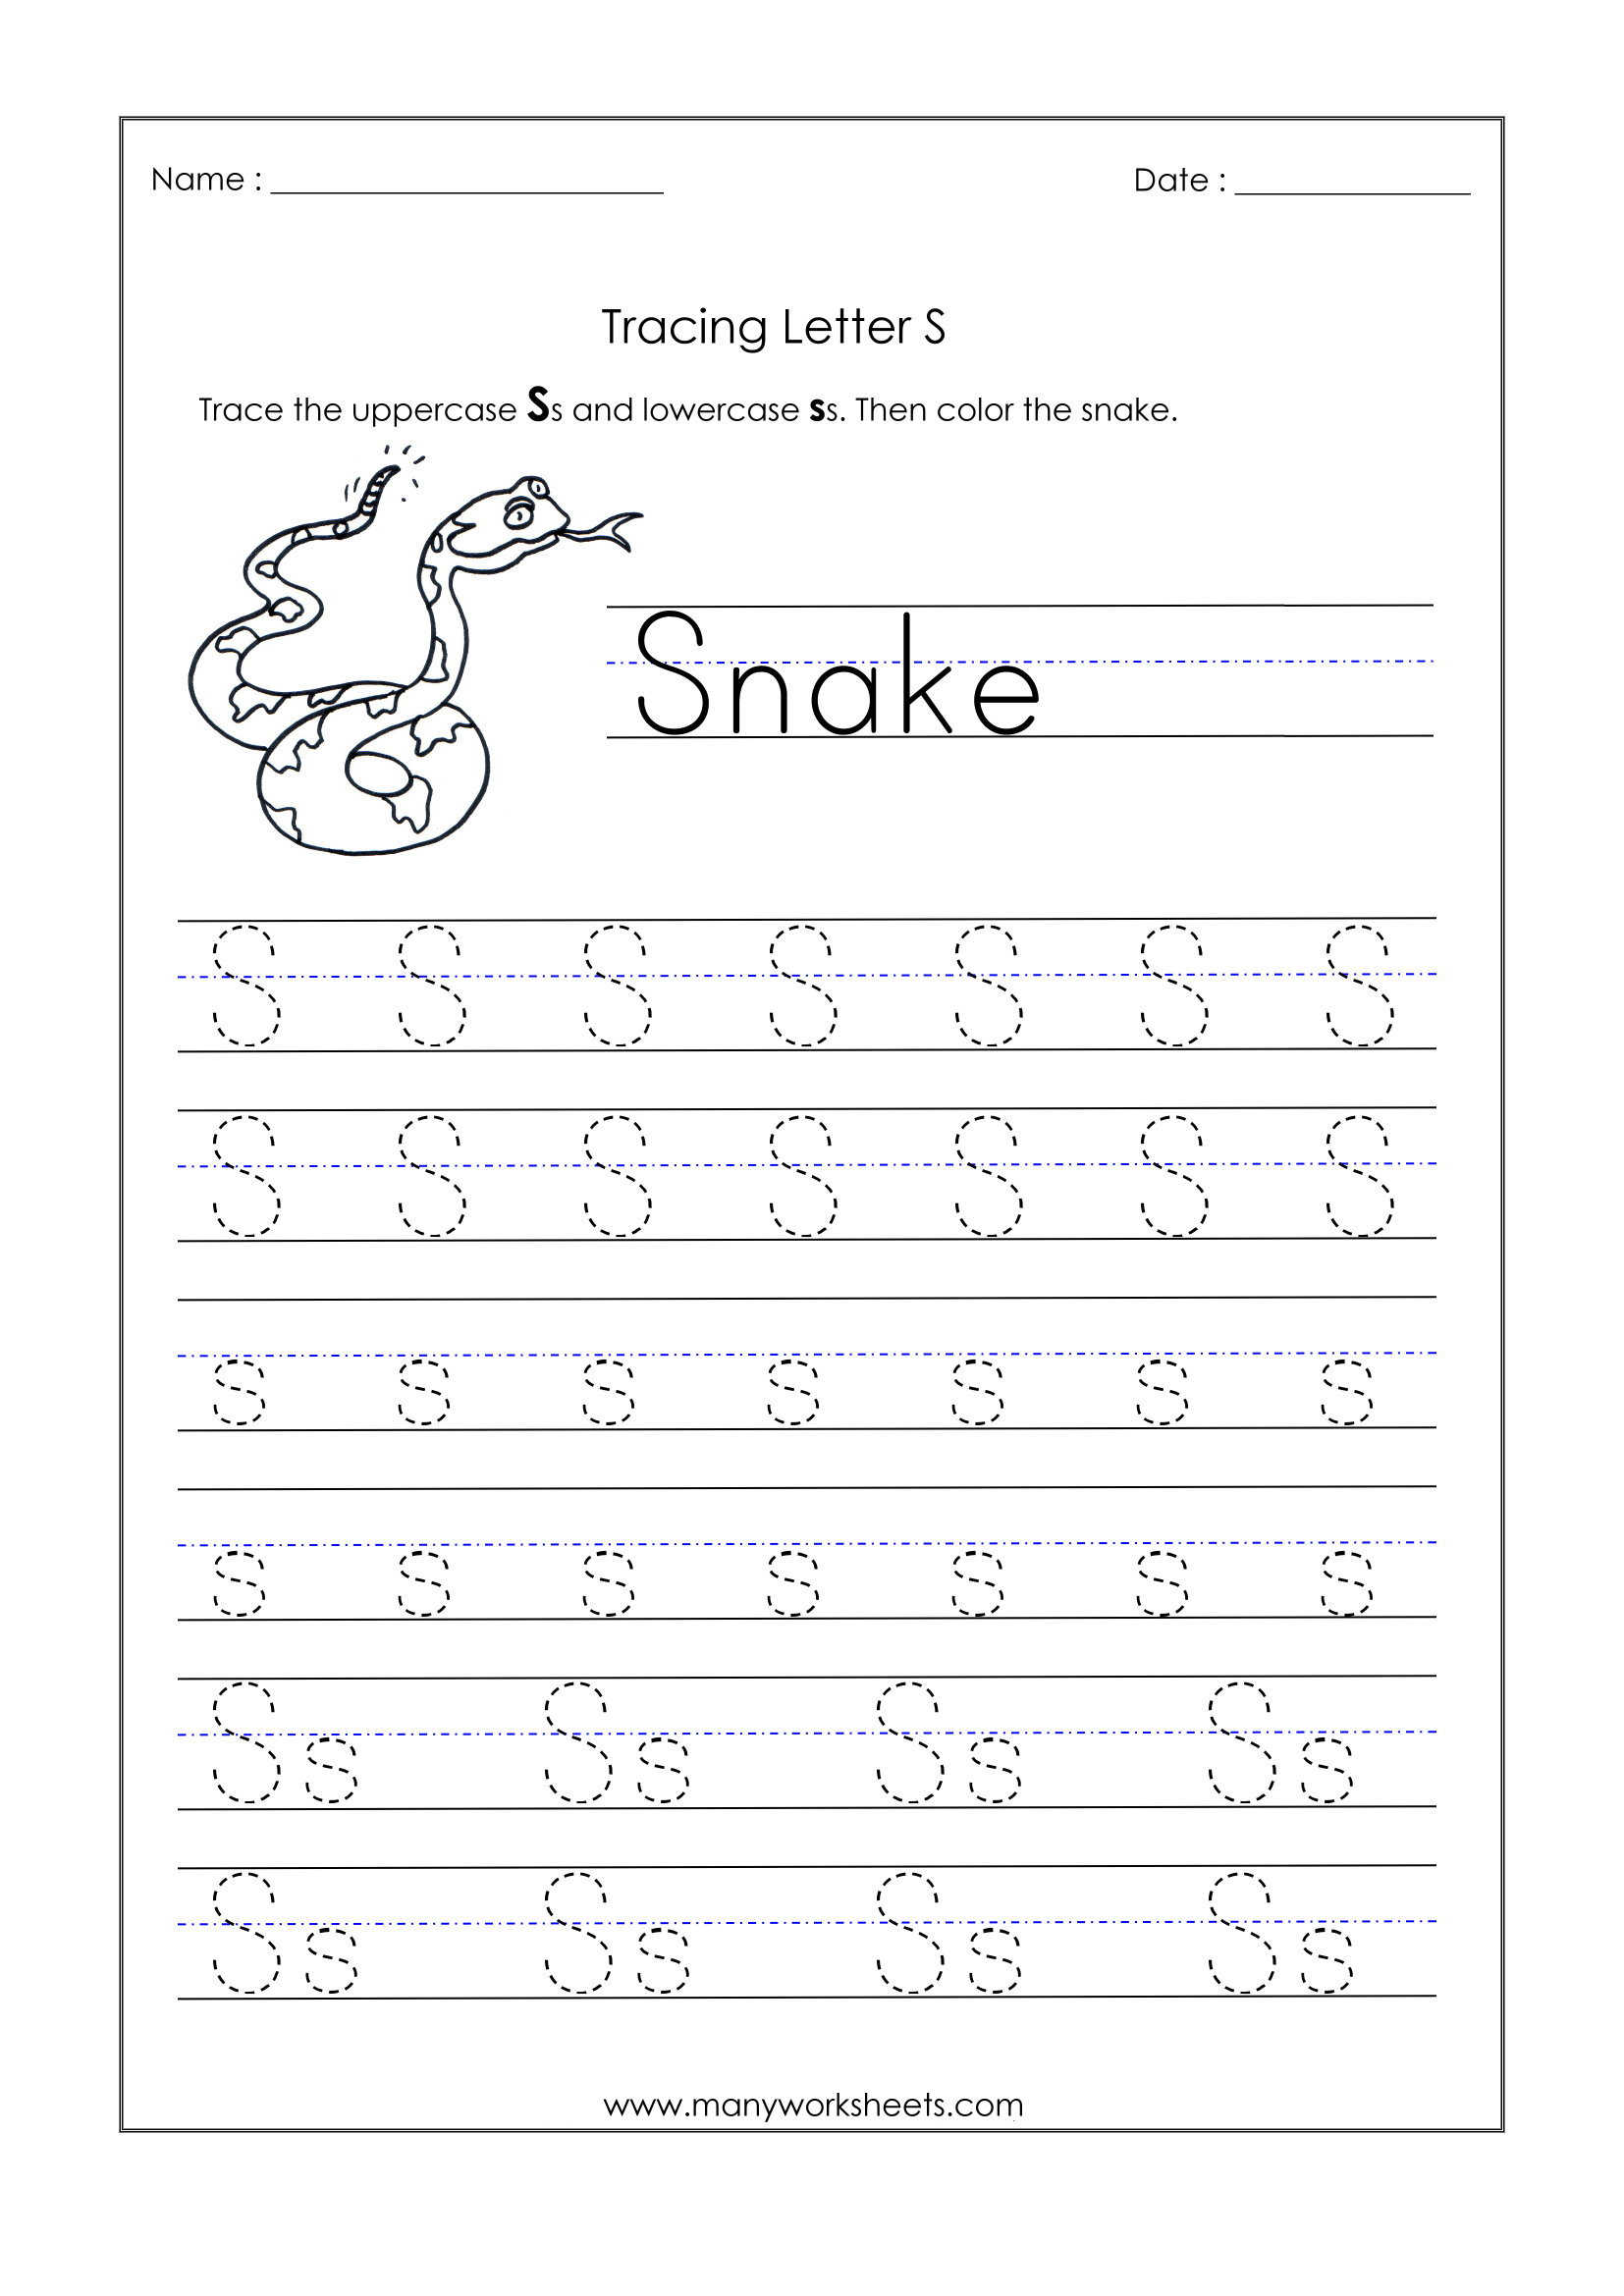 Letter S Tracing Worksheets For Kindergarten لم يسبق له مثيل within S Letter Tracing Worksheet